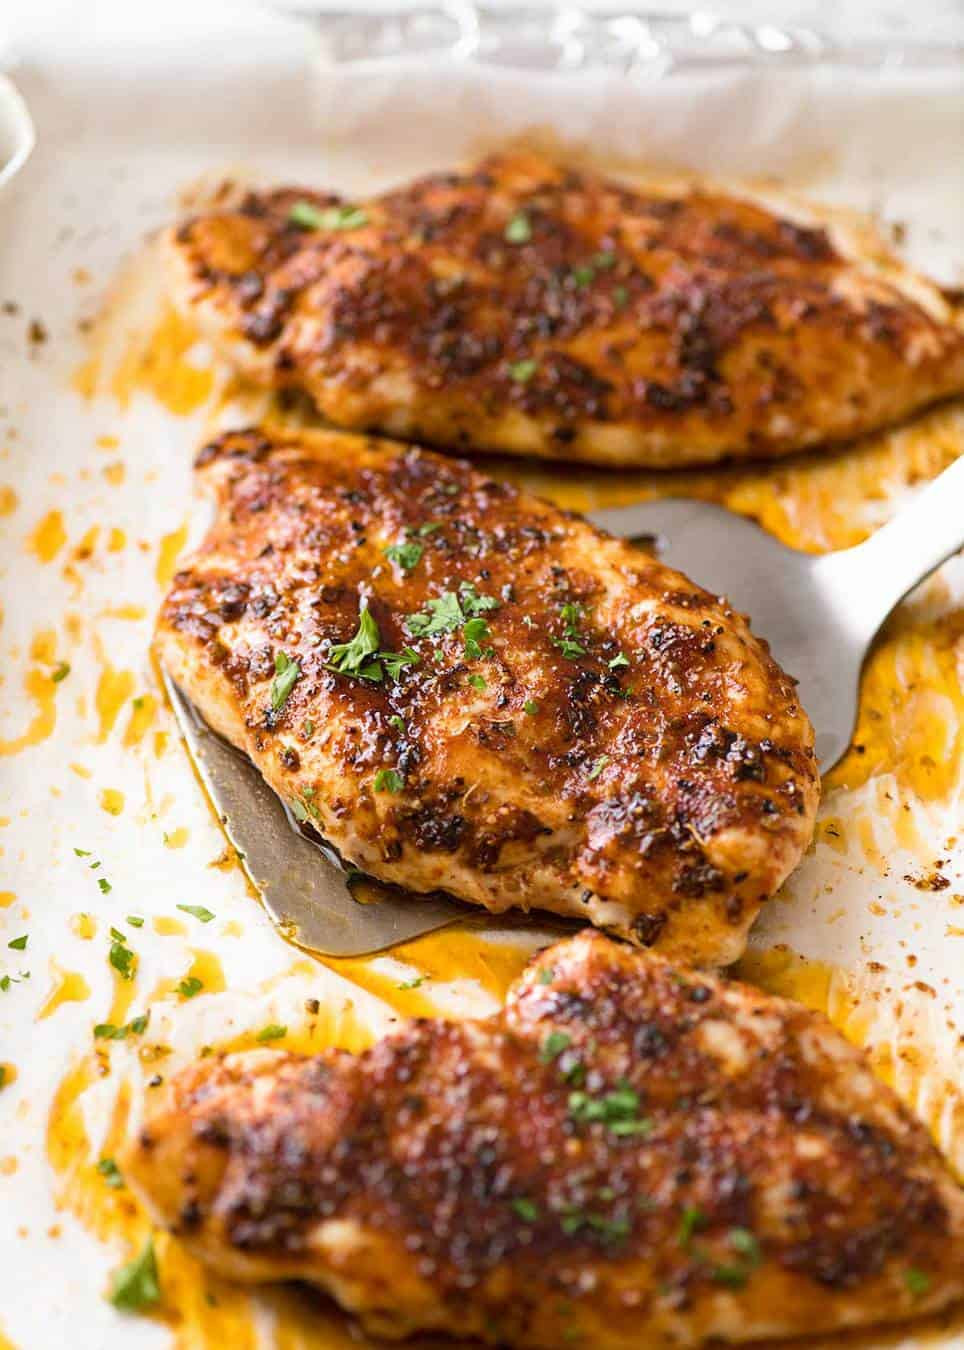 Oven Baked Chicken Recipes  Oven Baked Chicken Breast